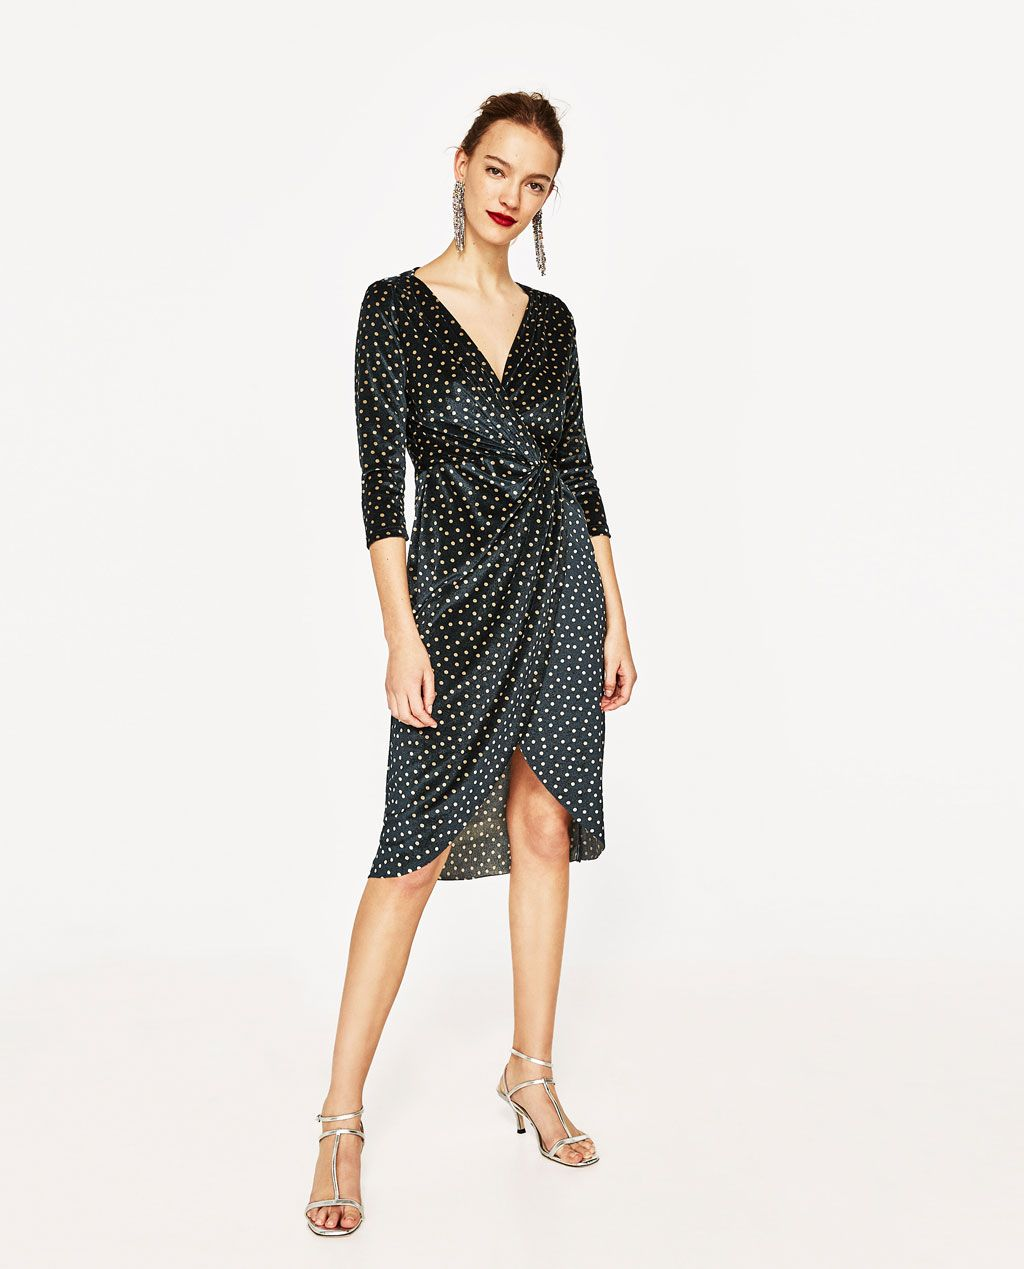 8ecee56da POLKA DOT DRESS WITH CROSSOVER NECKLINE-DRESS TIME-WOMAN | ZARA ...